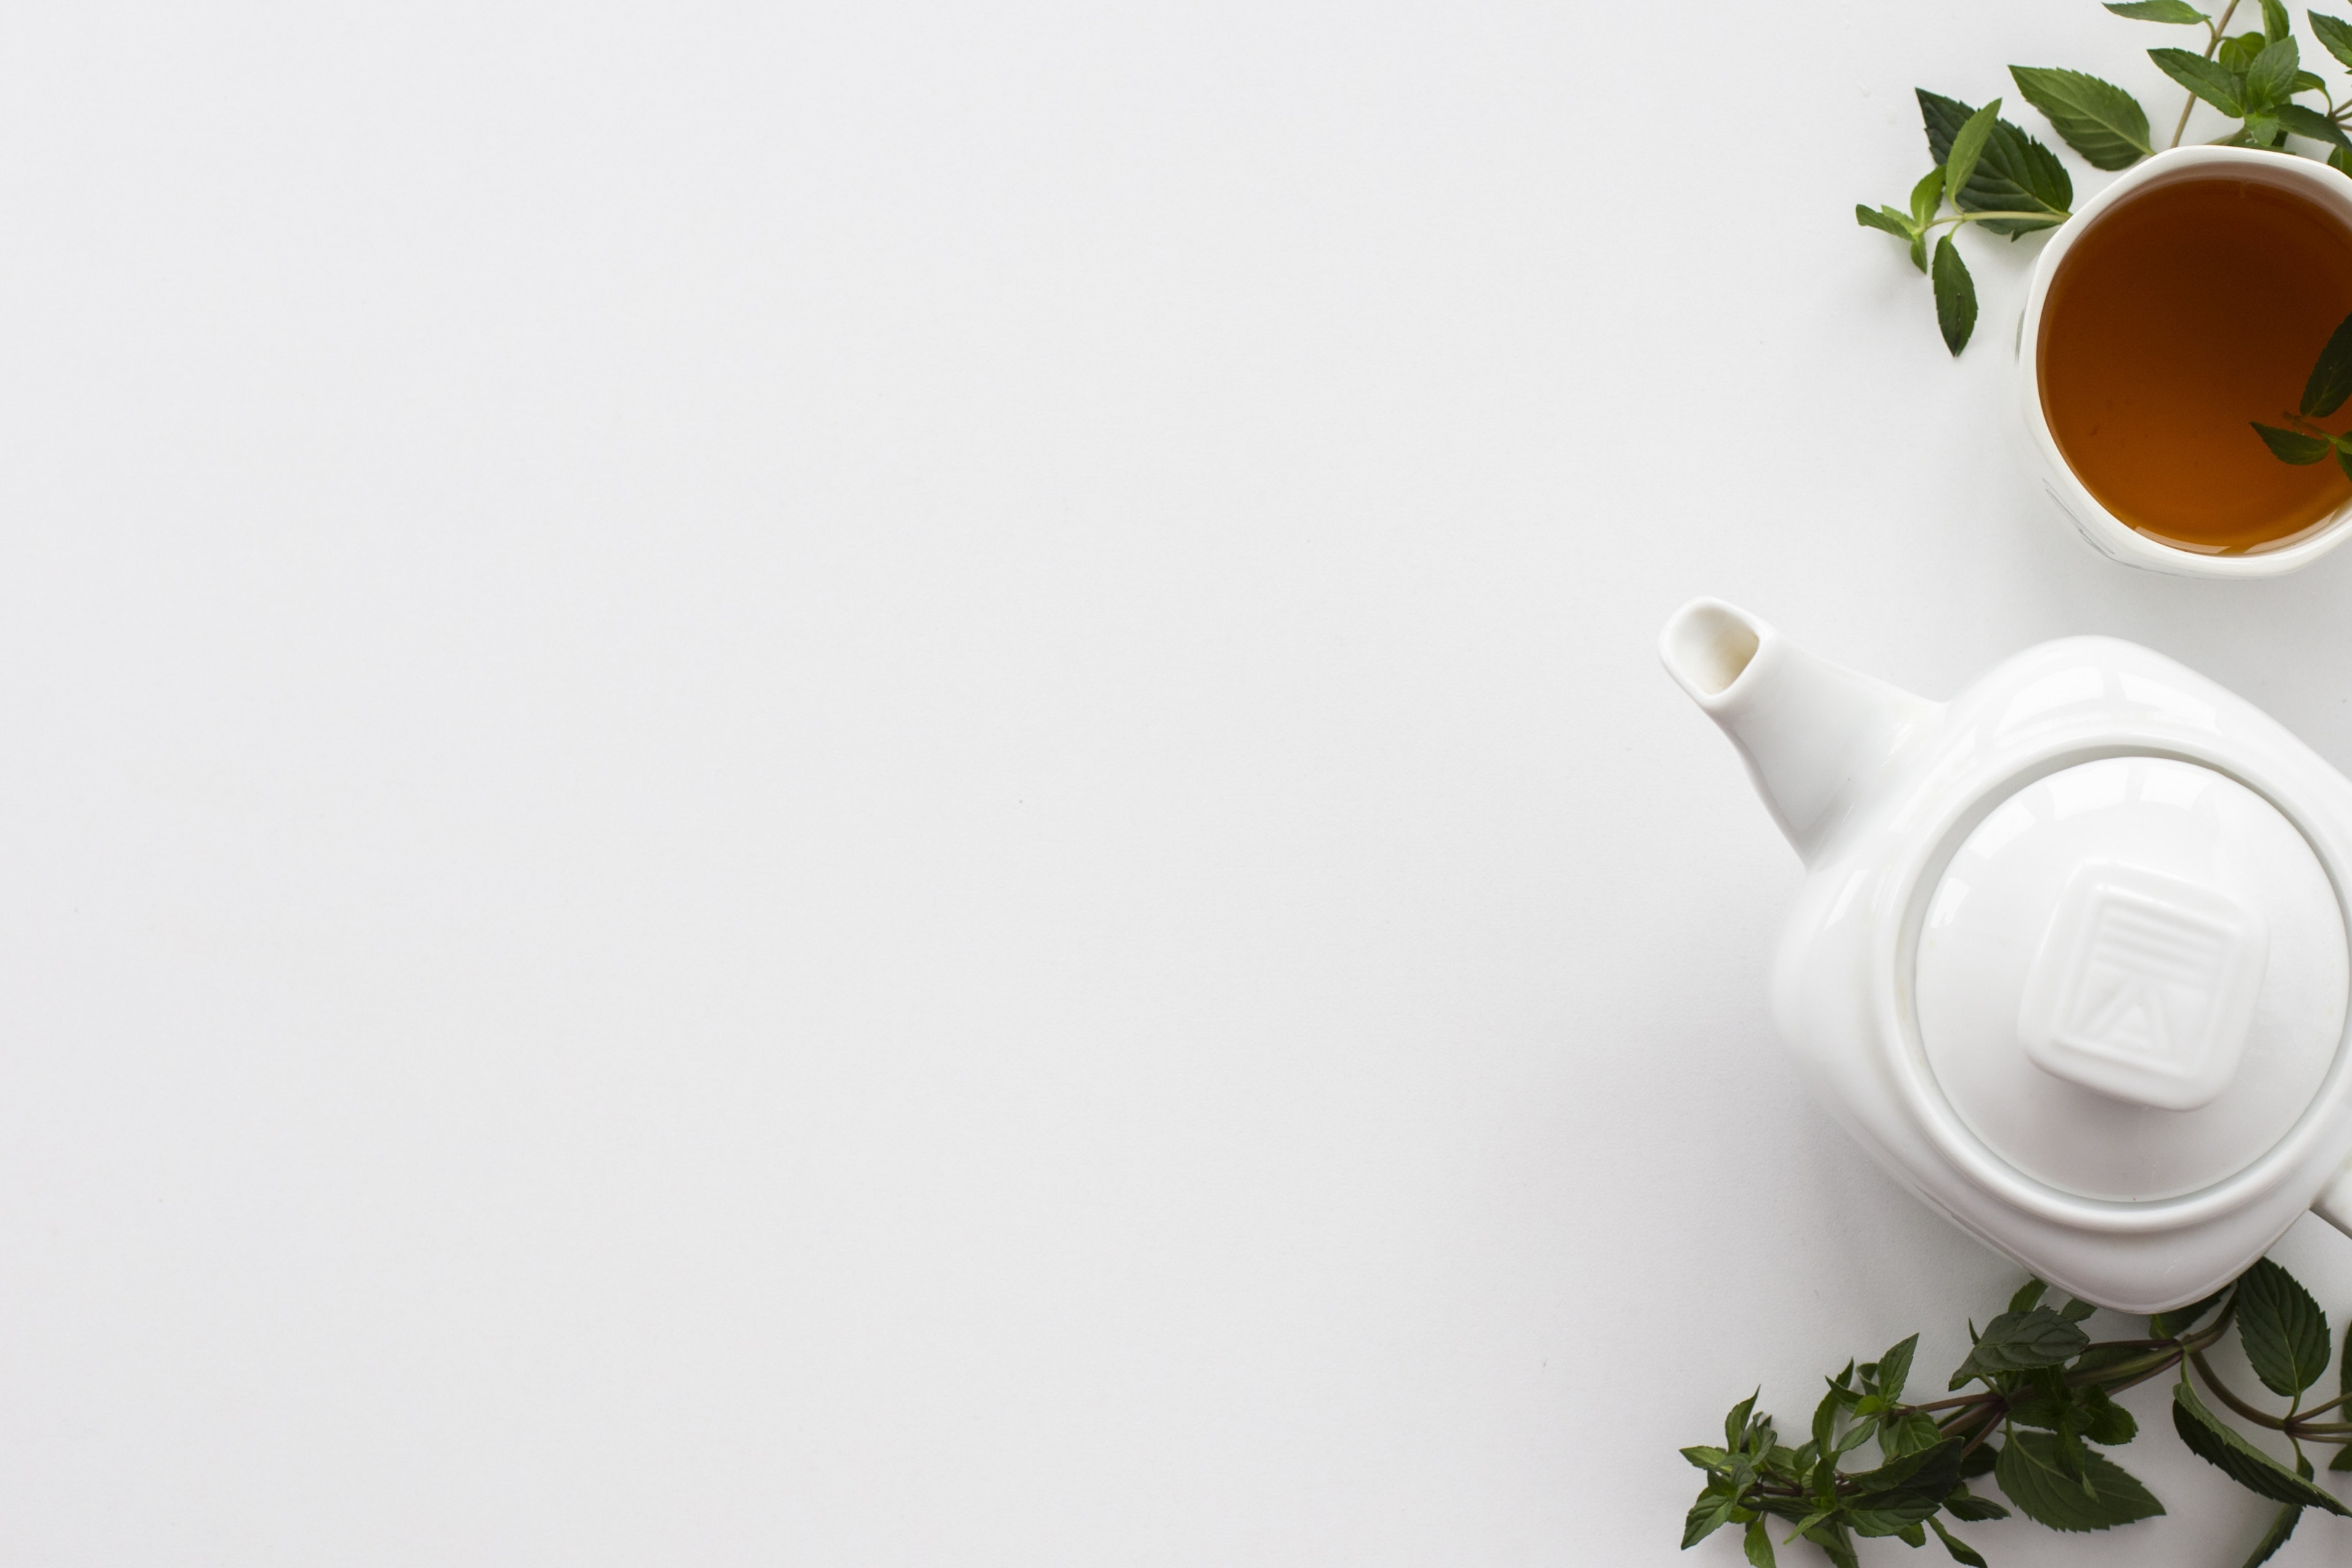 Teapot and cup of white tea with mint leaves